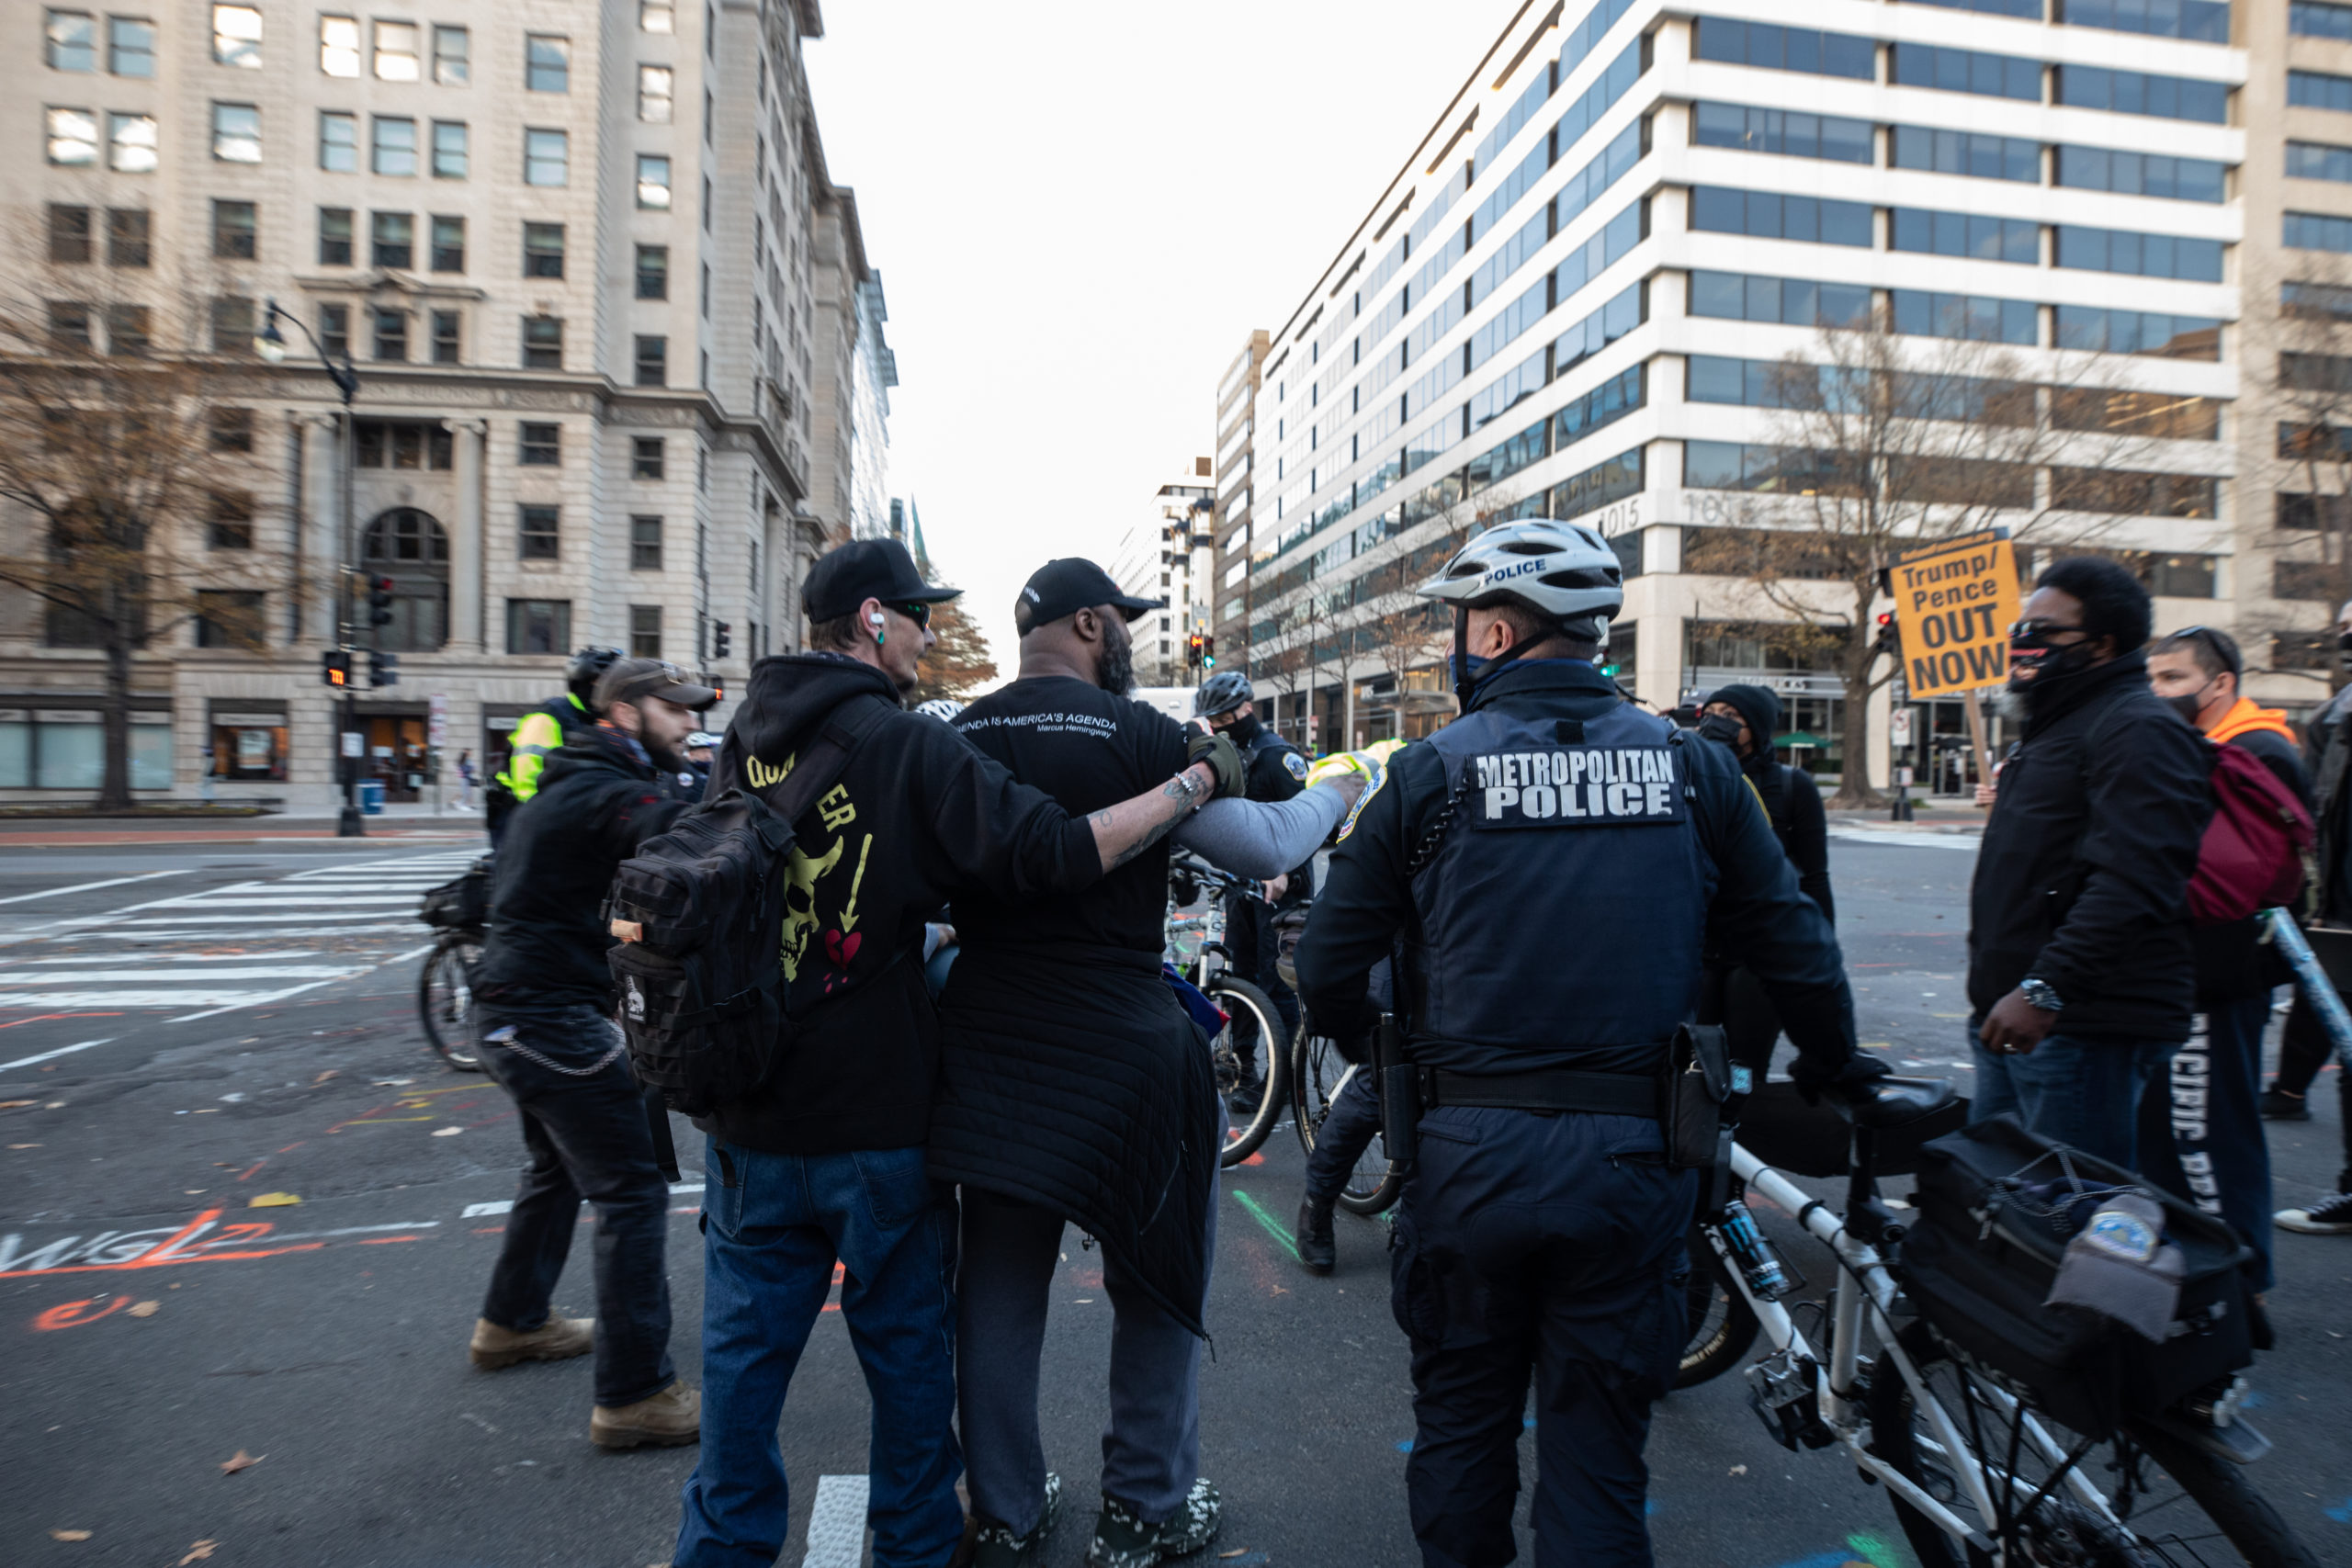 A man had to be pulled away from a group of counter protesters by a member of the Proud Boys near McPherson Square in Washington, D.C. on Dec. 12, 2020. (Photo: Kaylee Greenlee - Daily Caller News Foundation)